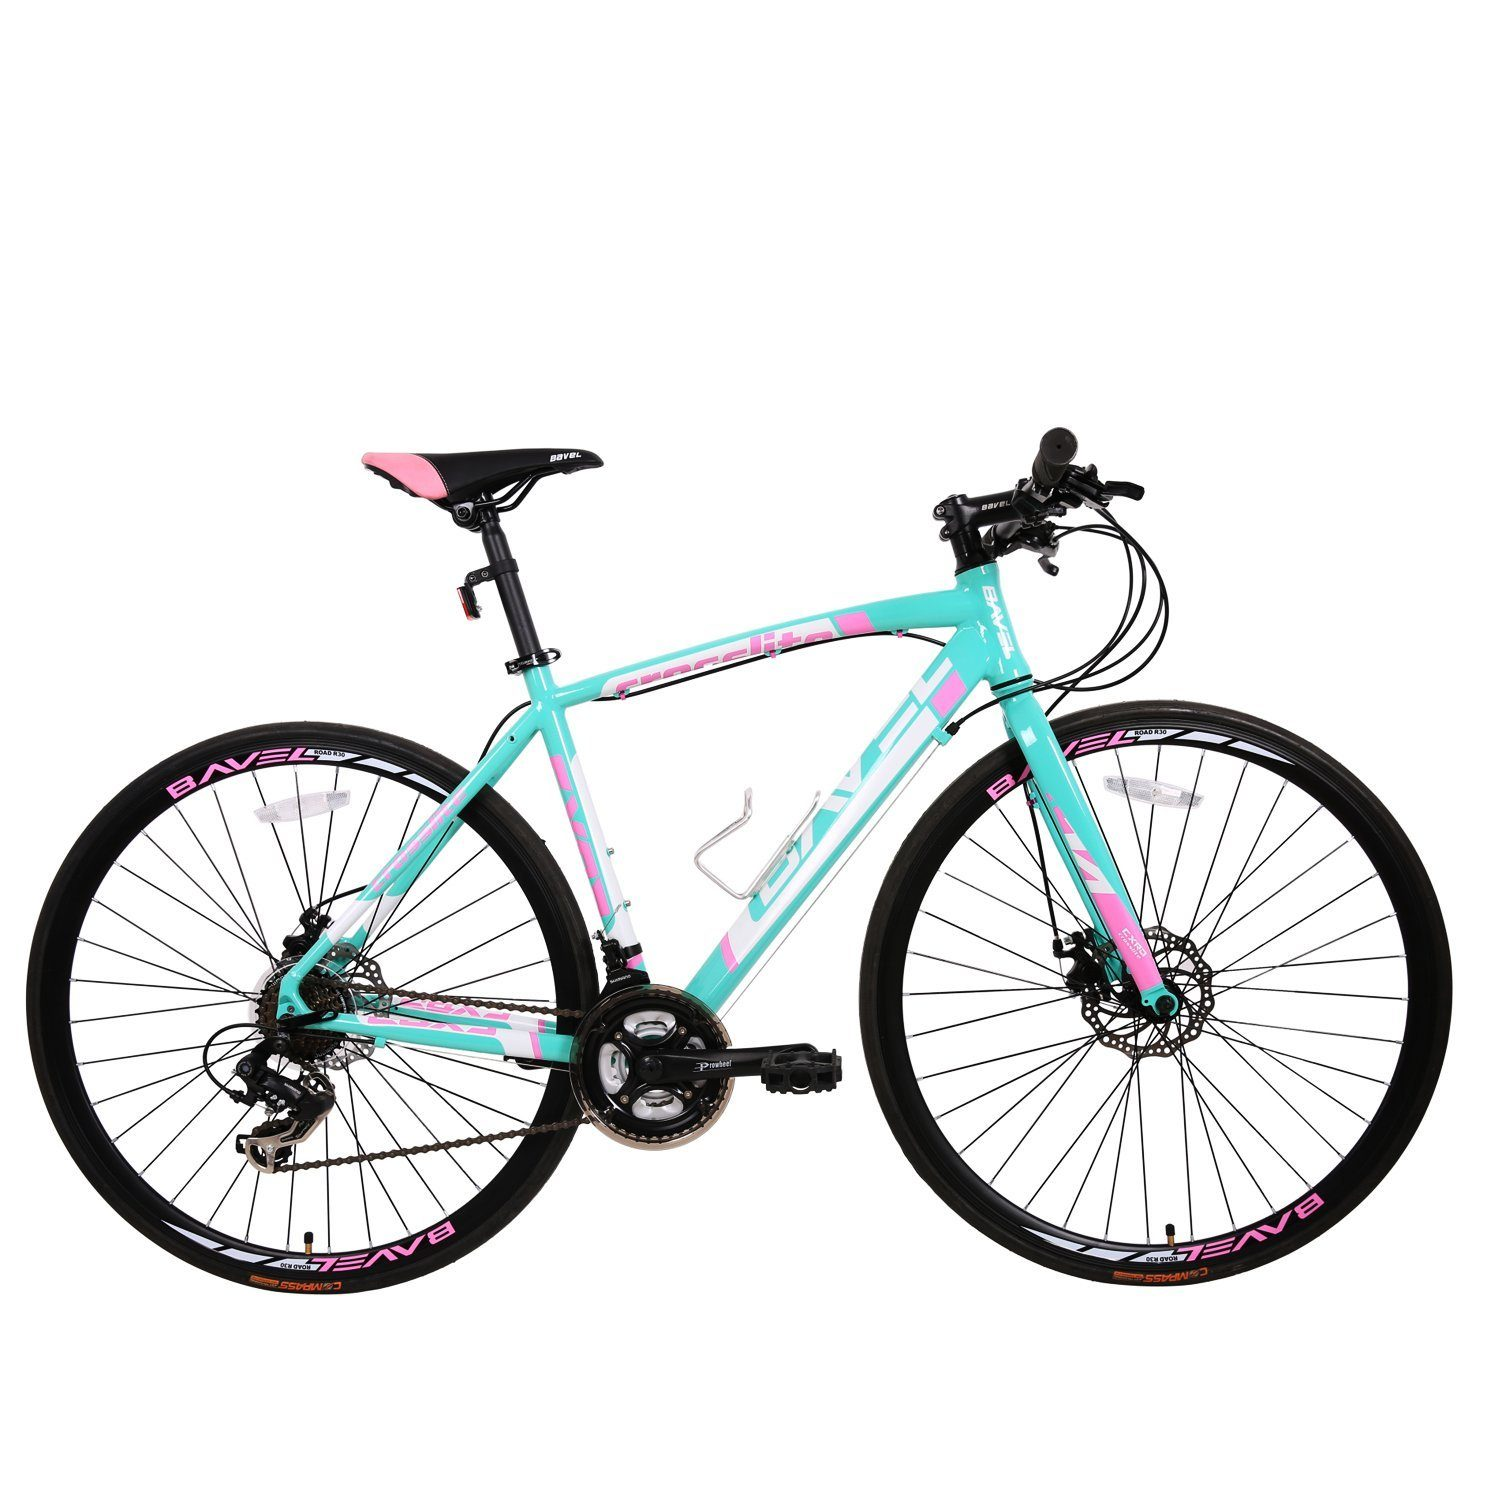 6 Affordable Road Bikes Under 500 Road Bike Adventure Your